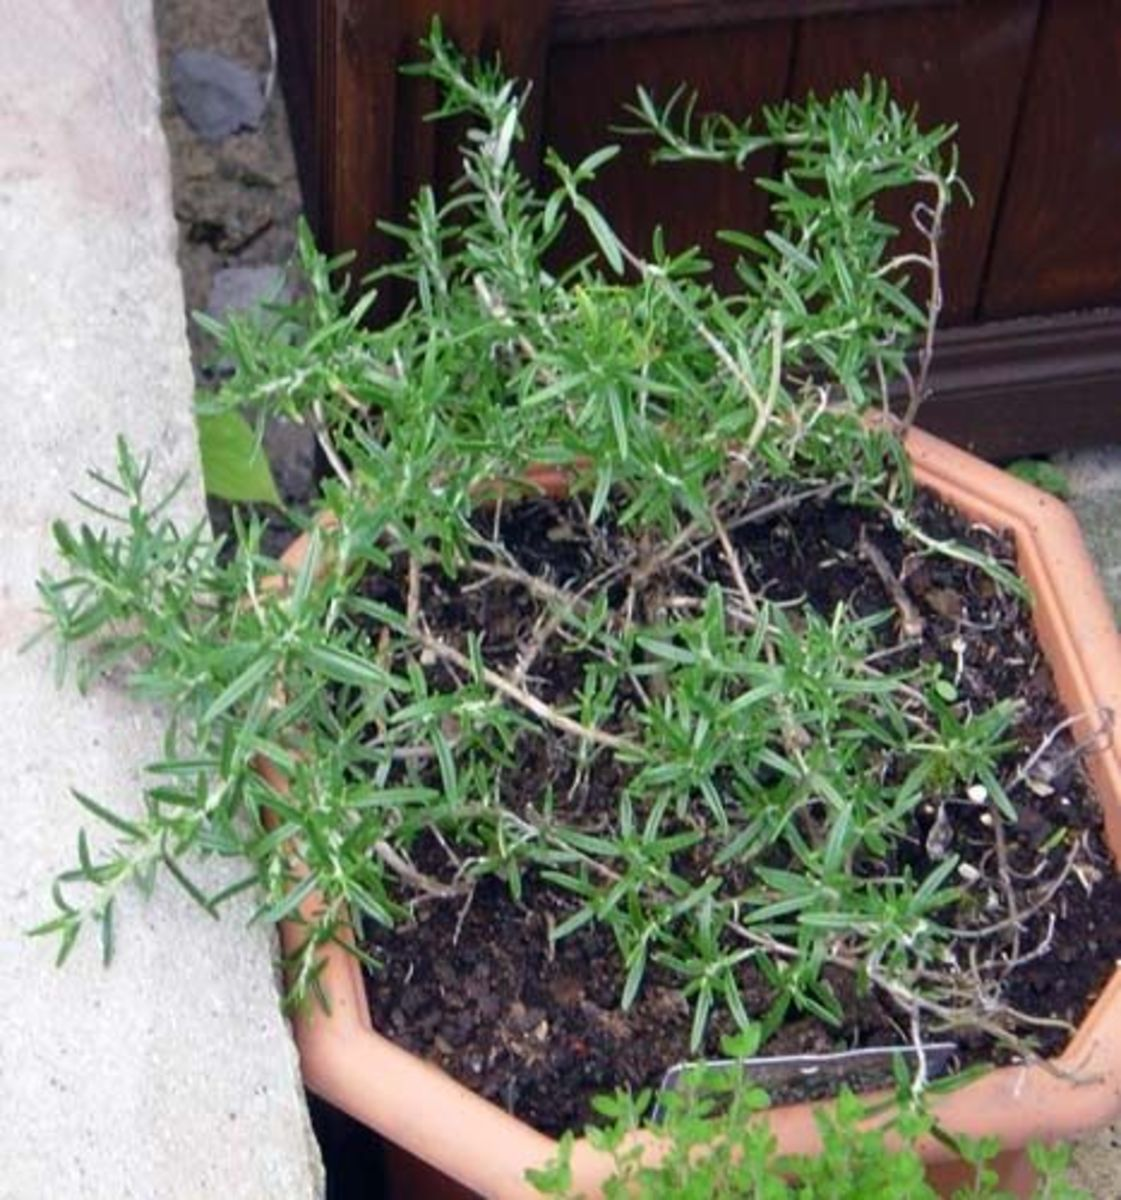 Rosemary in a flower pot.